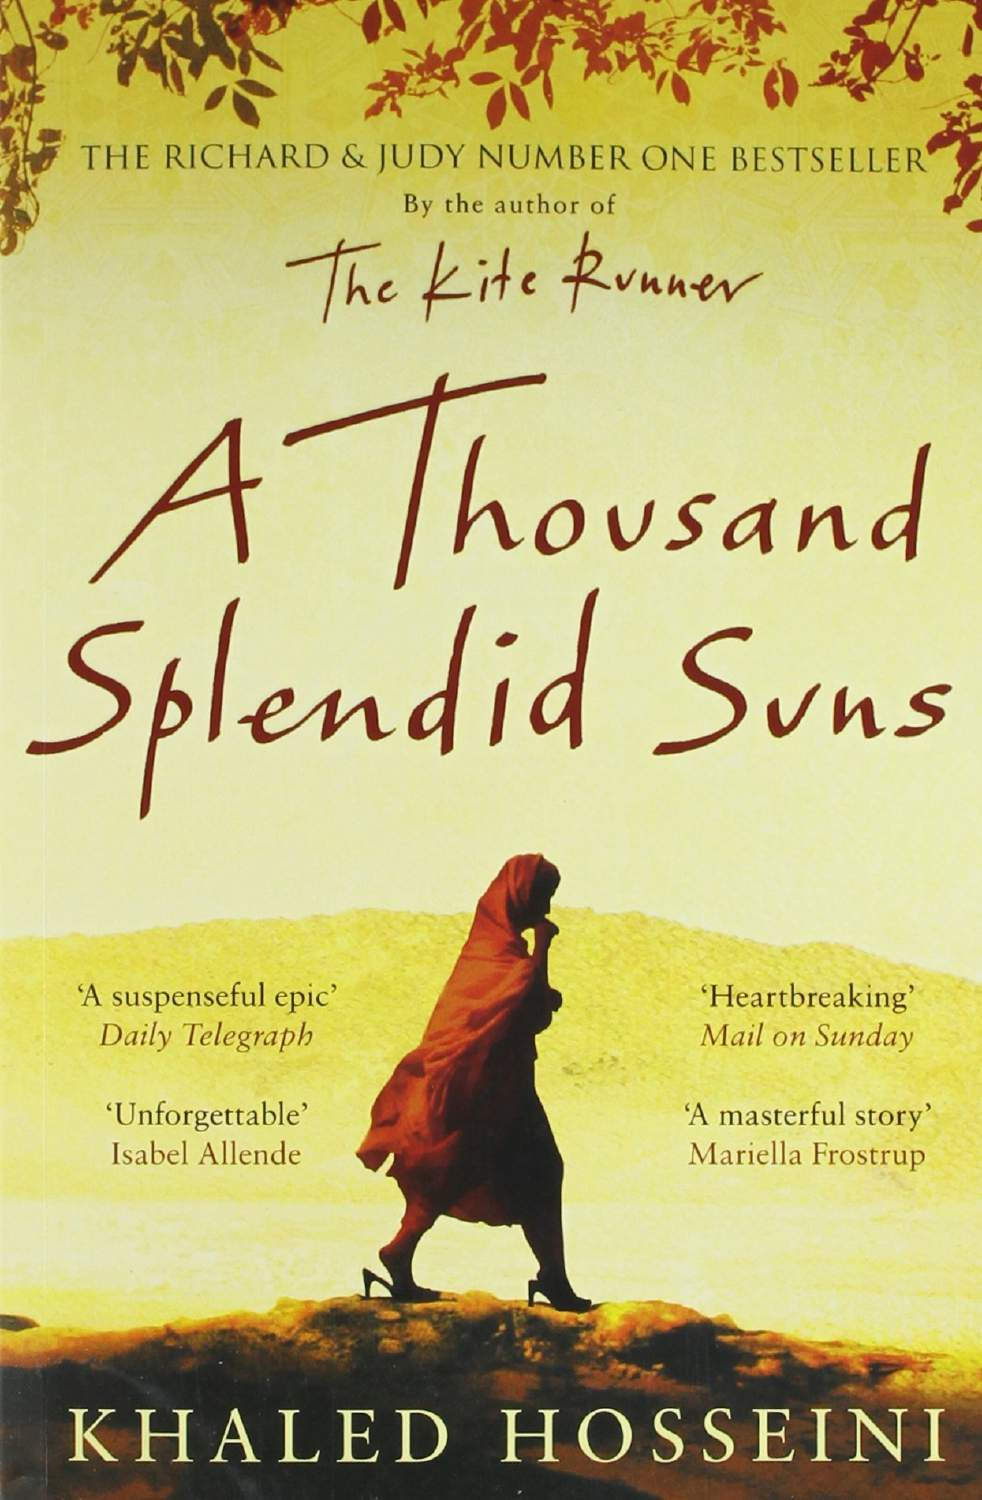 A World Of Voices: A Thousand Splendid Suns